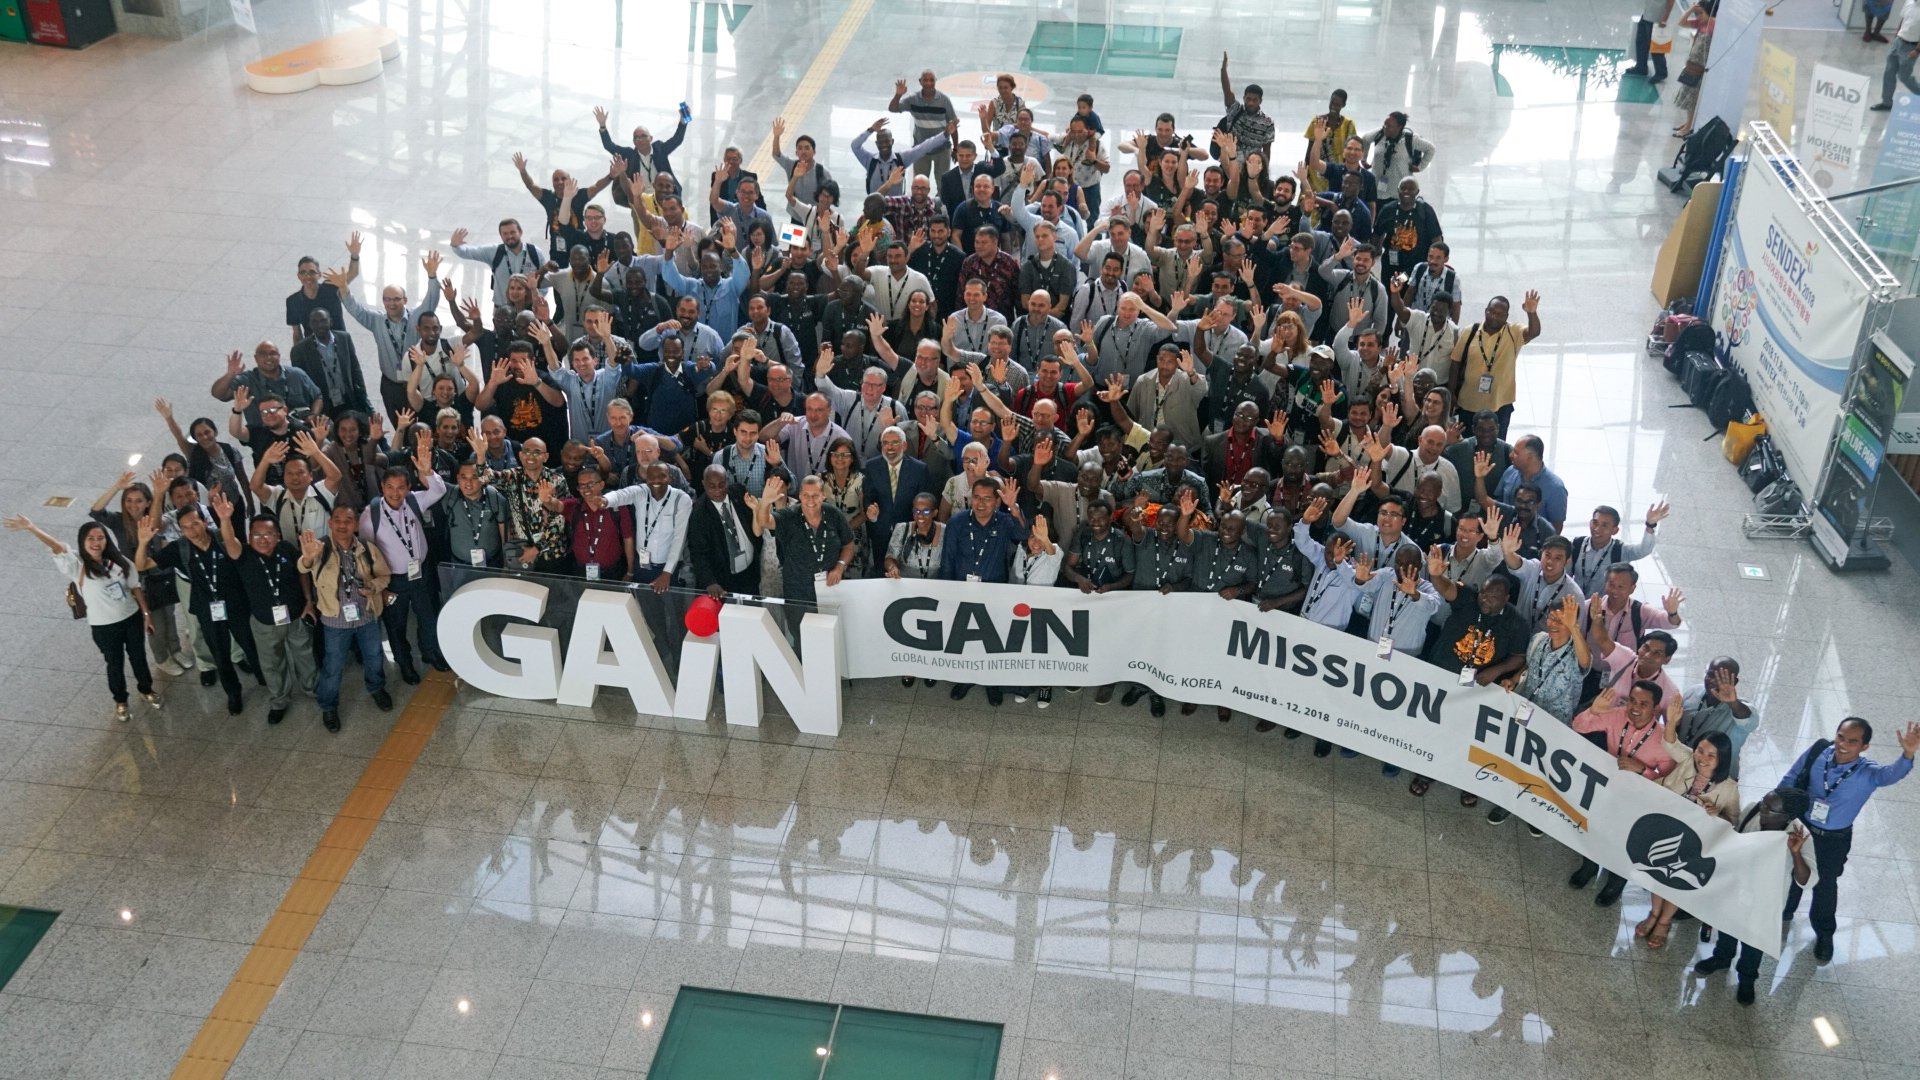 netAwards and More Presented at Final Day of GAiN Conference in Korea